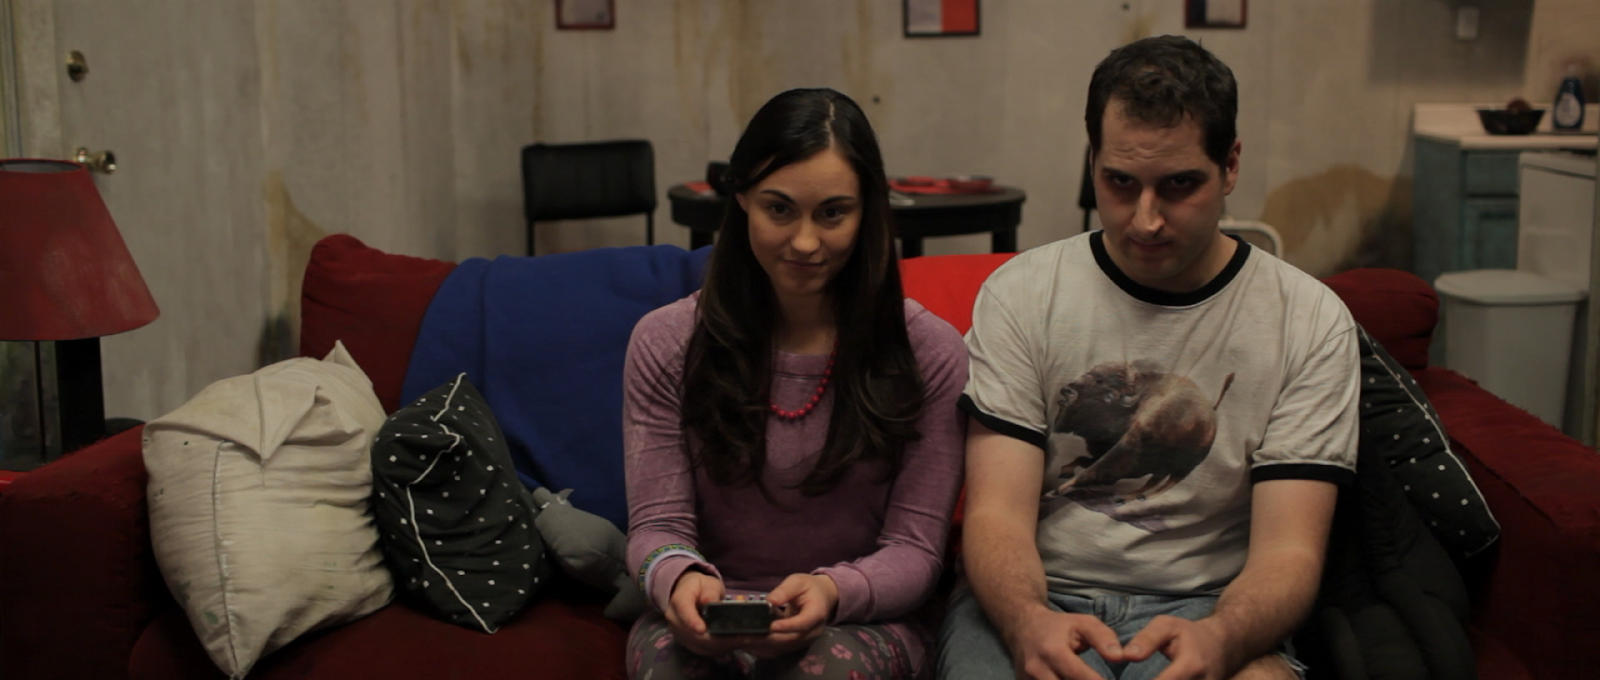 Leah and Ian getting cozy on the couch in Motivational Growth (2013)